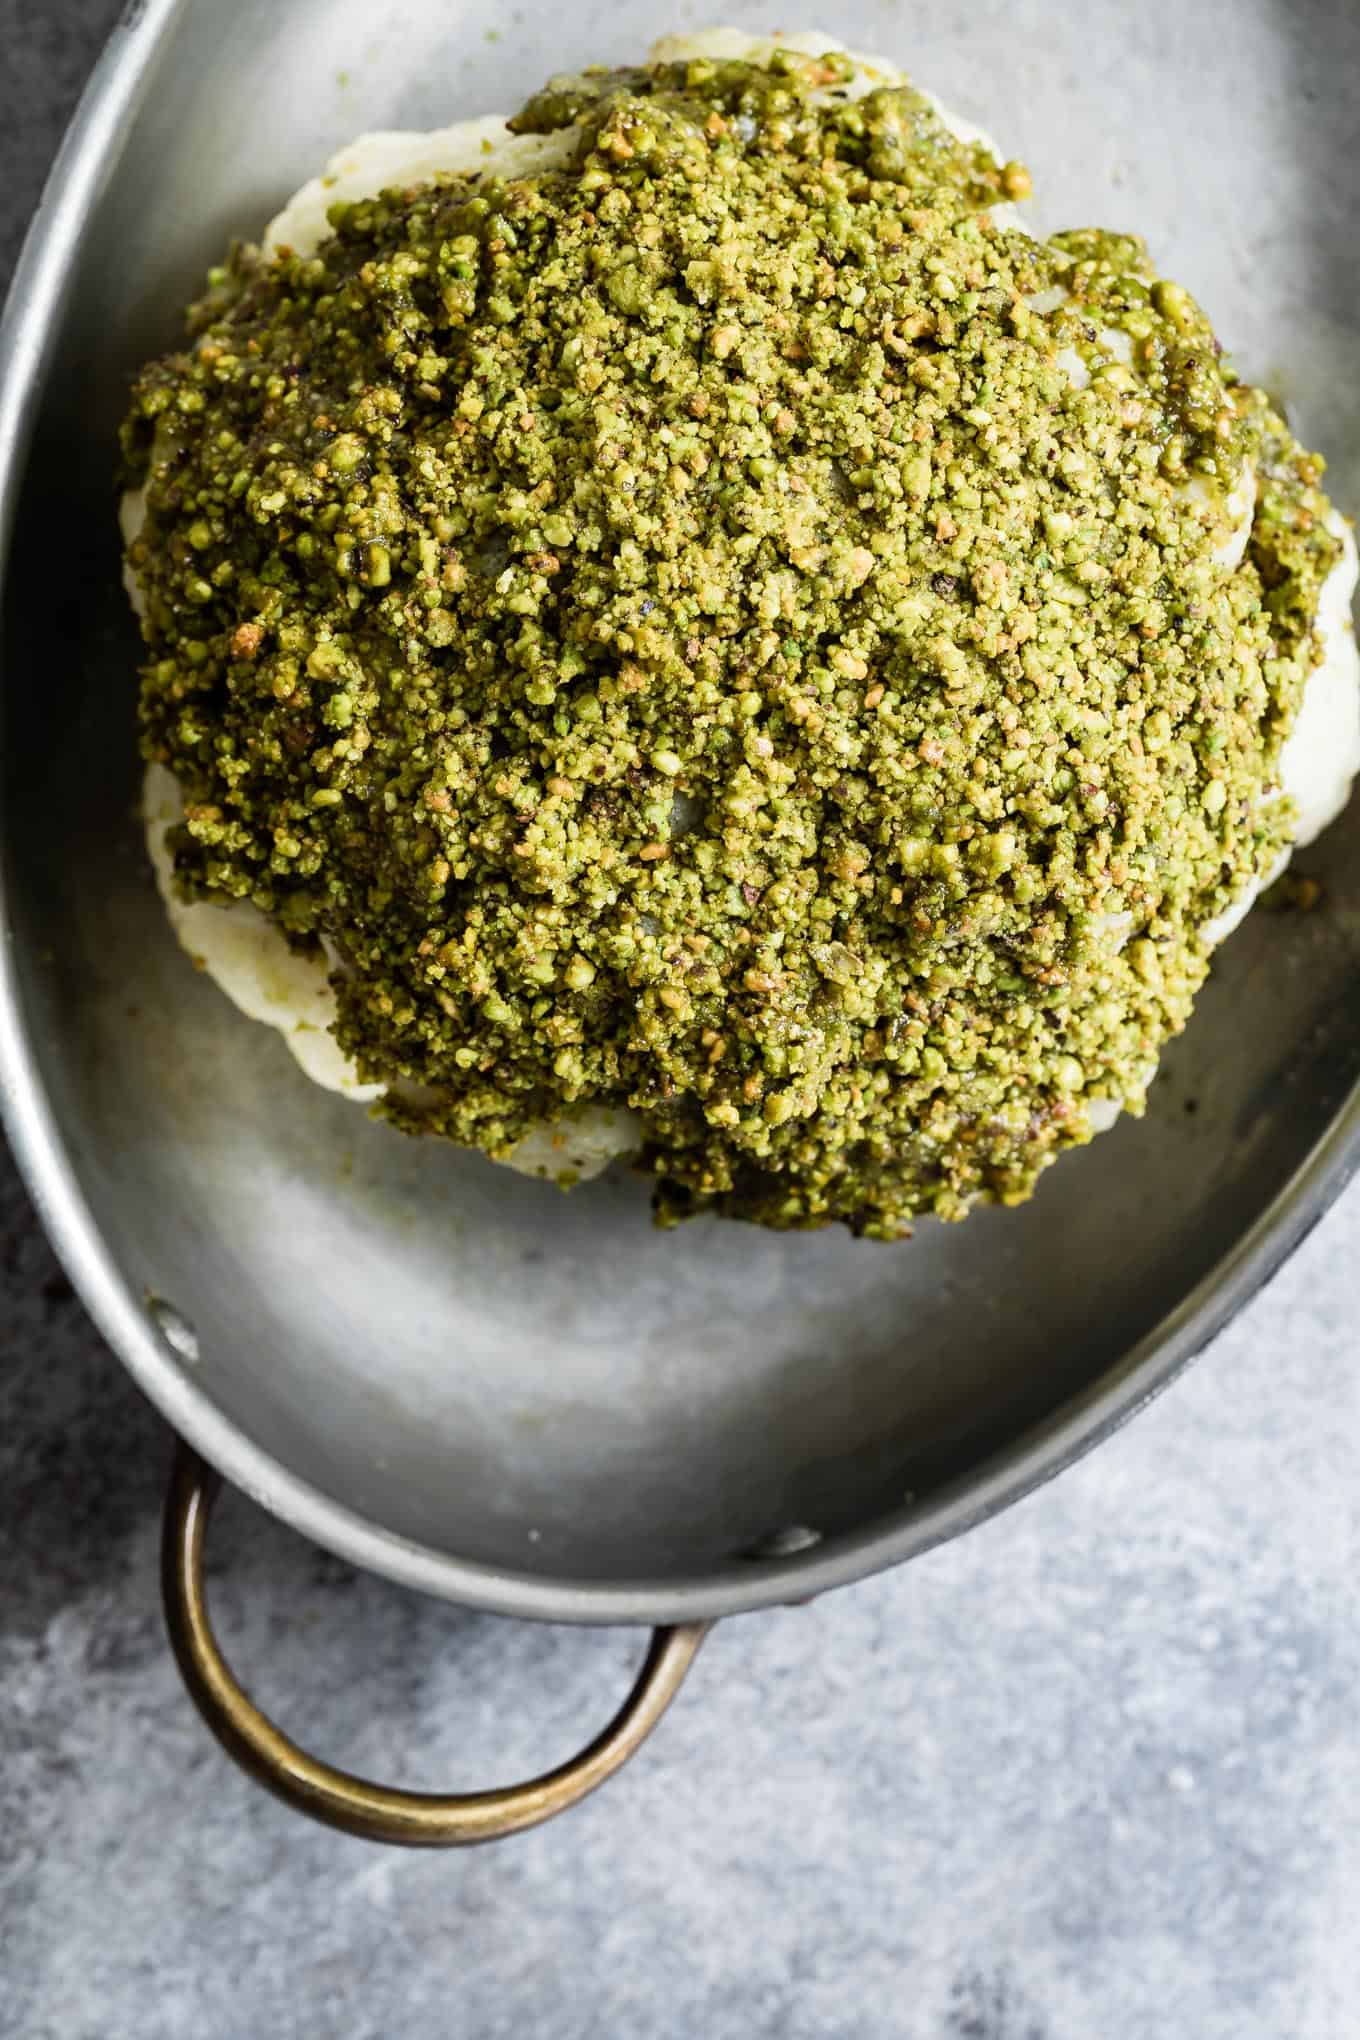 Pistachio-Crusted Whole Roasted Cauliflower Recipe